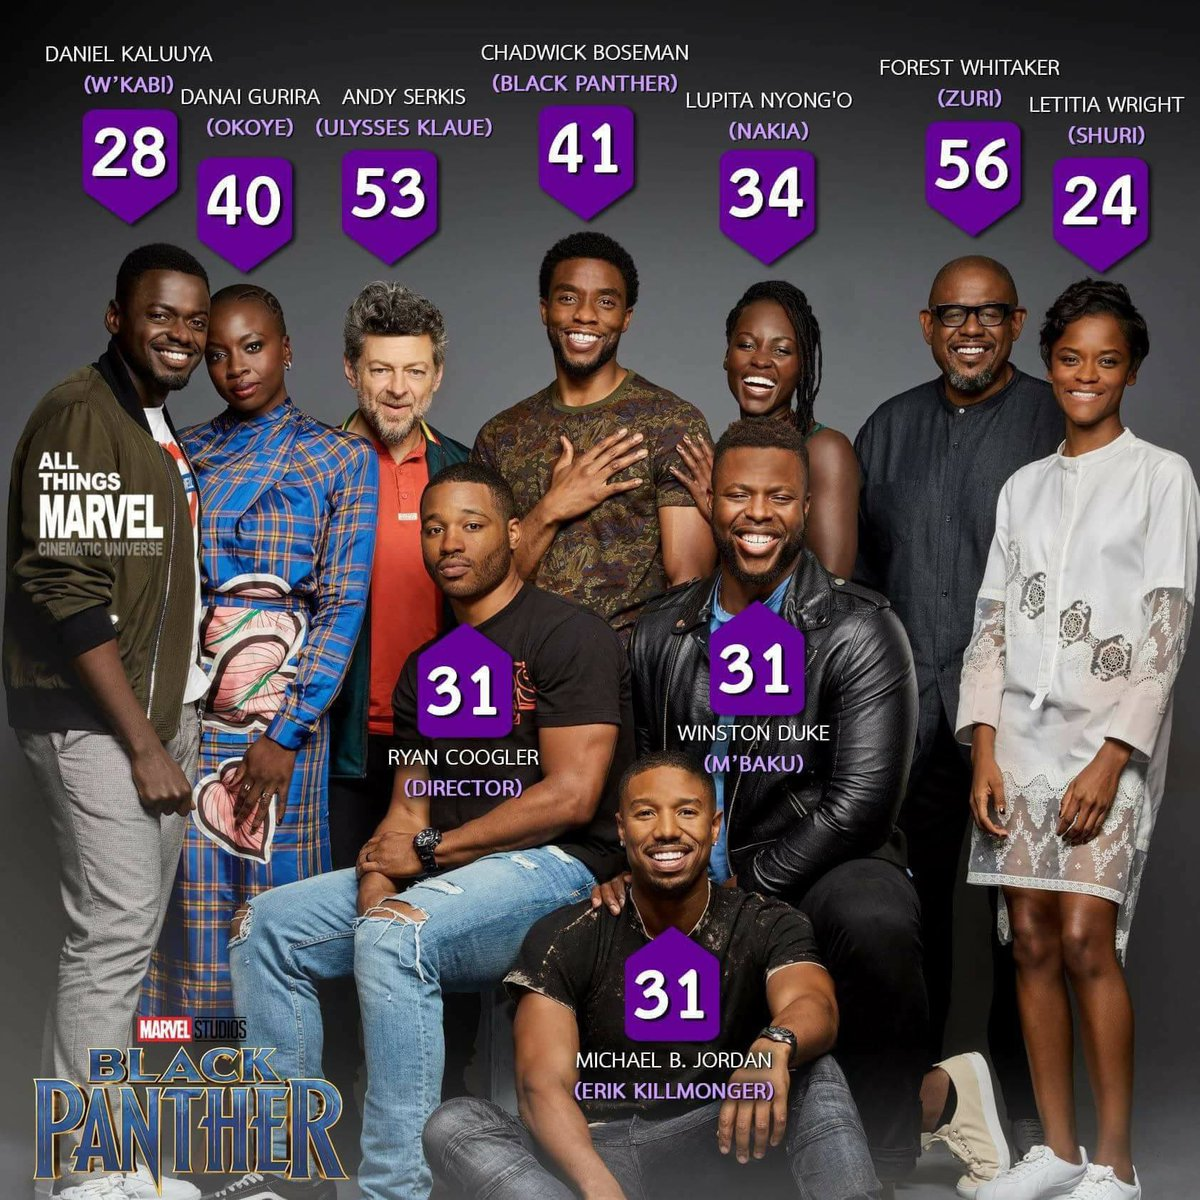 Whole cast (minus Andy) aging like fine wine  #WakandaForever <br>http://pic.twitter.com/LWPCIMFDPr